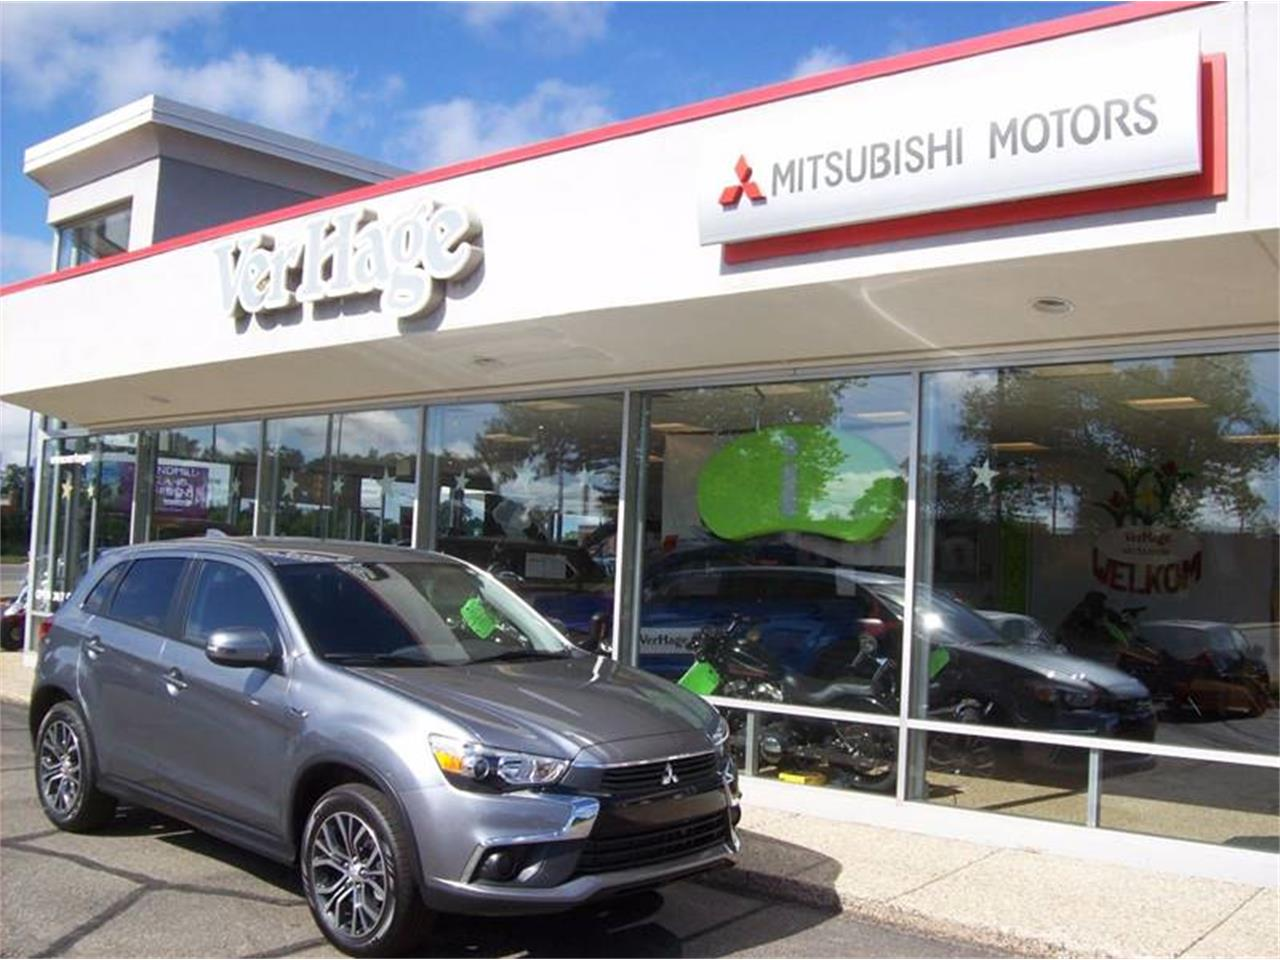 Large Picture of 2017 Mitsubishi Outlander located in Holland Michigan - $18,685.00 Offered by Verhage Mitsubishi - L8Y5